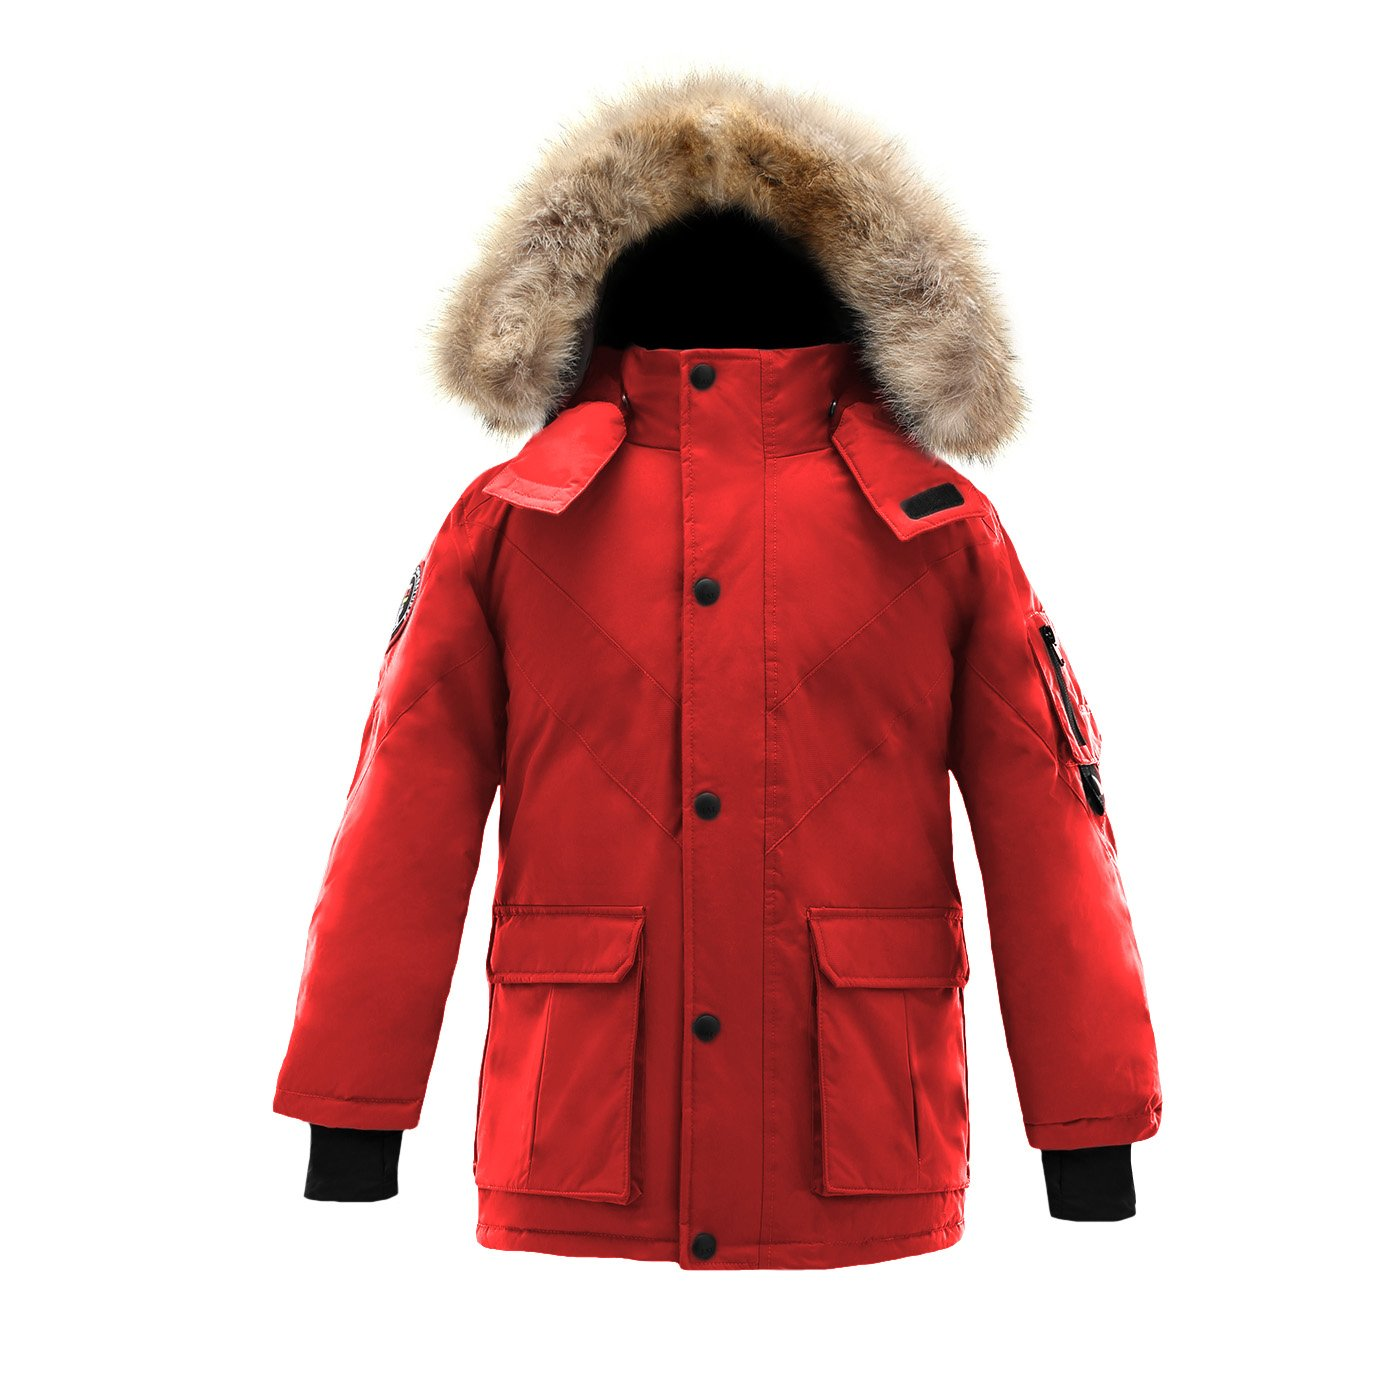 Triple F.A.T. Goose Hesselberg Boys Hooded Goose Down Arctic Parka With Real Coyote Fur (6, Red) by Triple F.A.T. Goose